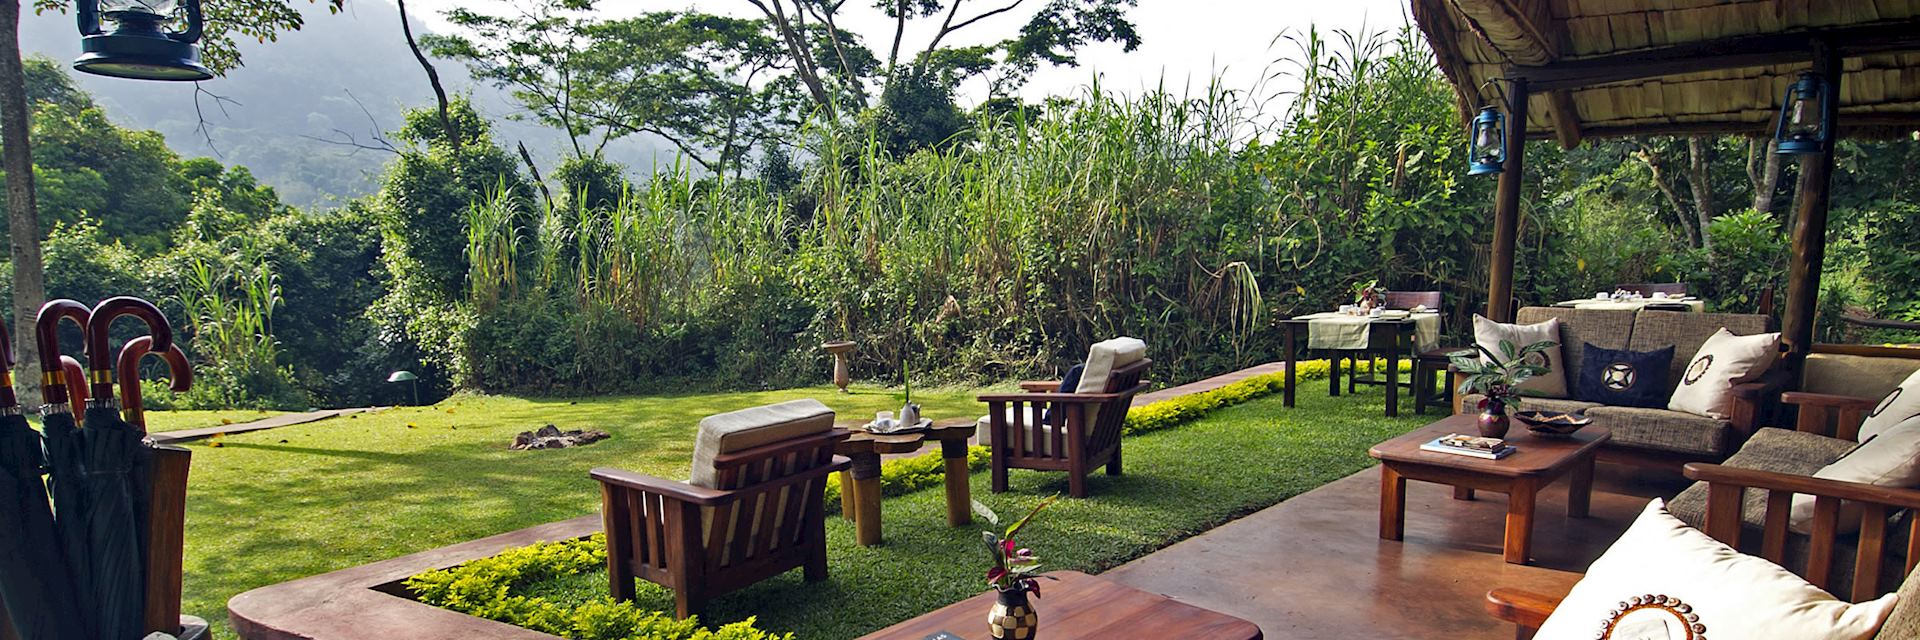 Gorilla Forest Camp, Bwindi Impenetrable Forest National Park